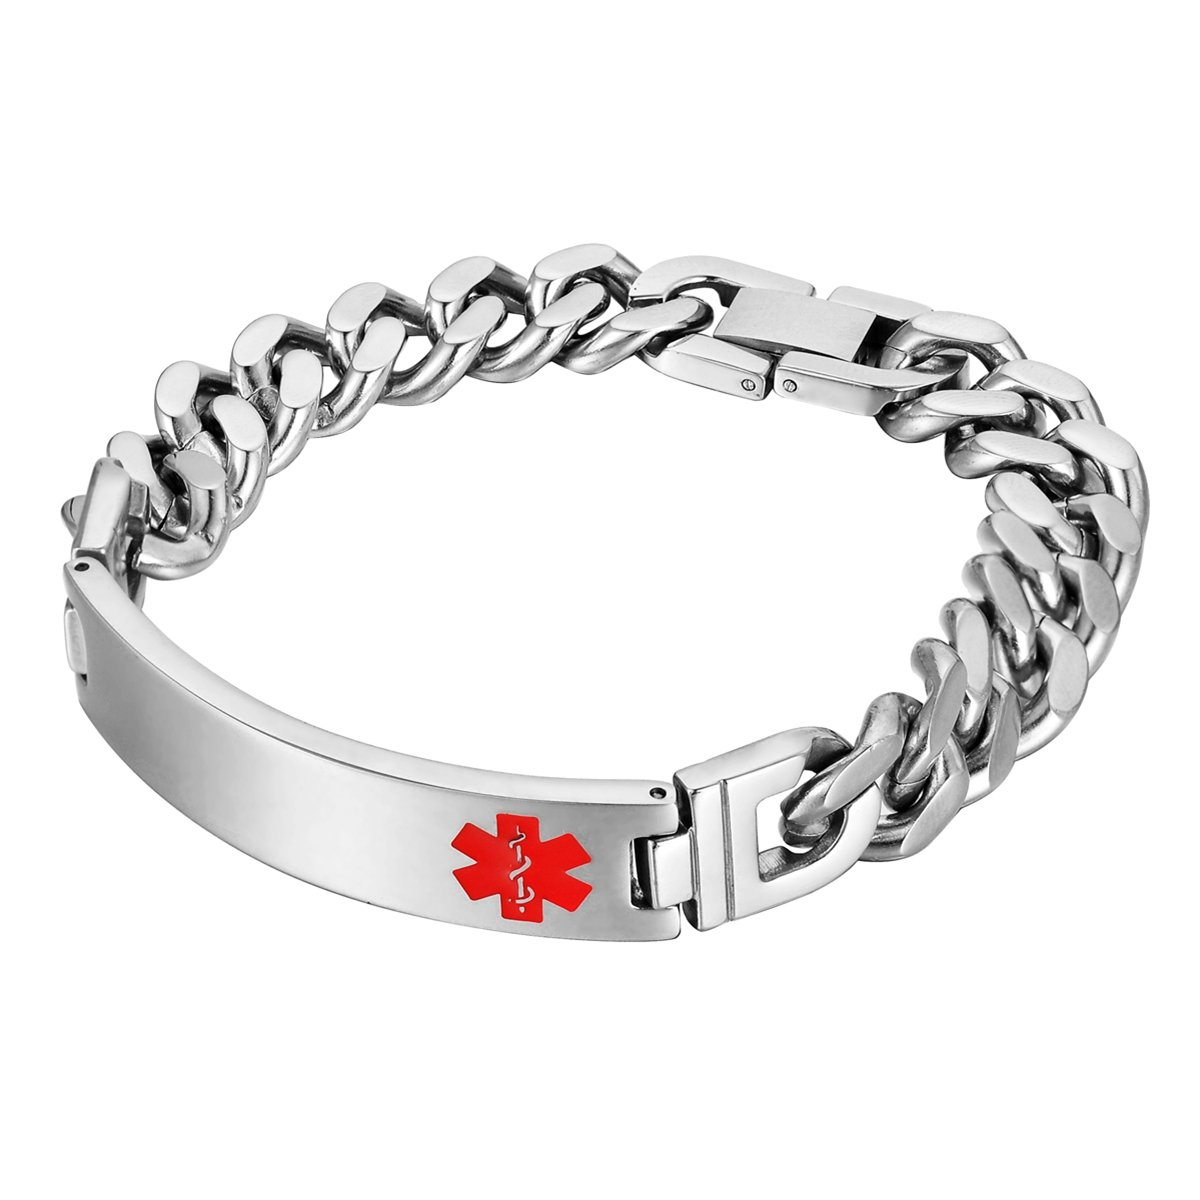 HOUSWEETY Unisex Stainless Steel Medical Alert ID Stretch Bracelet for Men and Women HOUSWEETYKLB109107